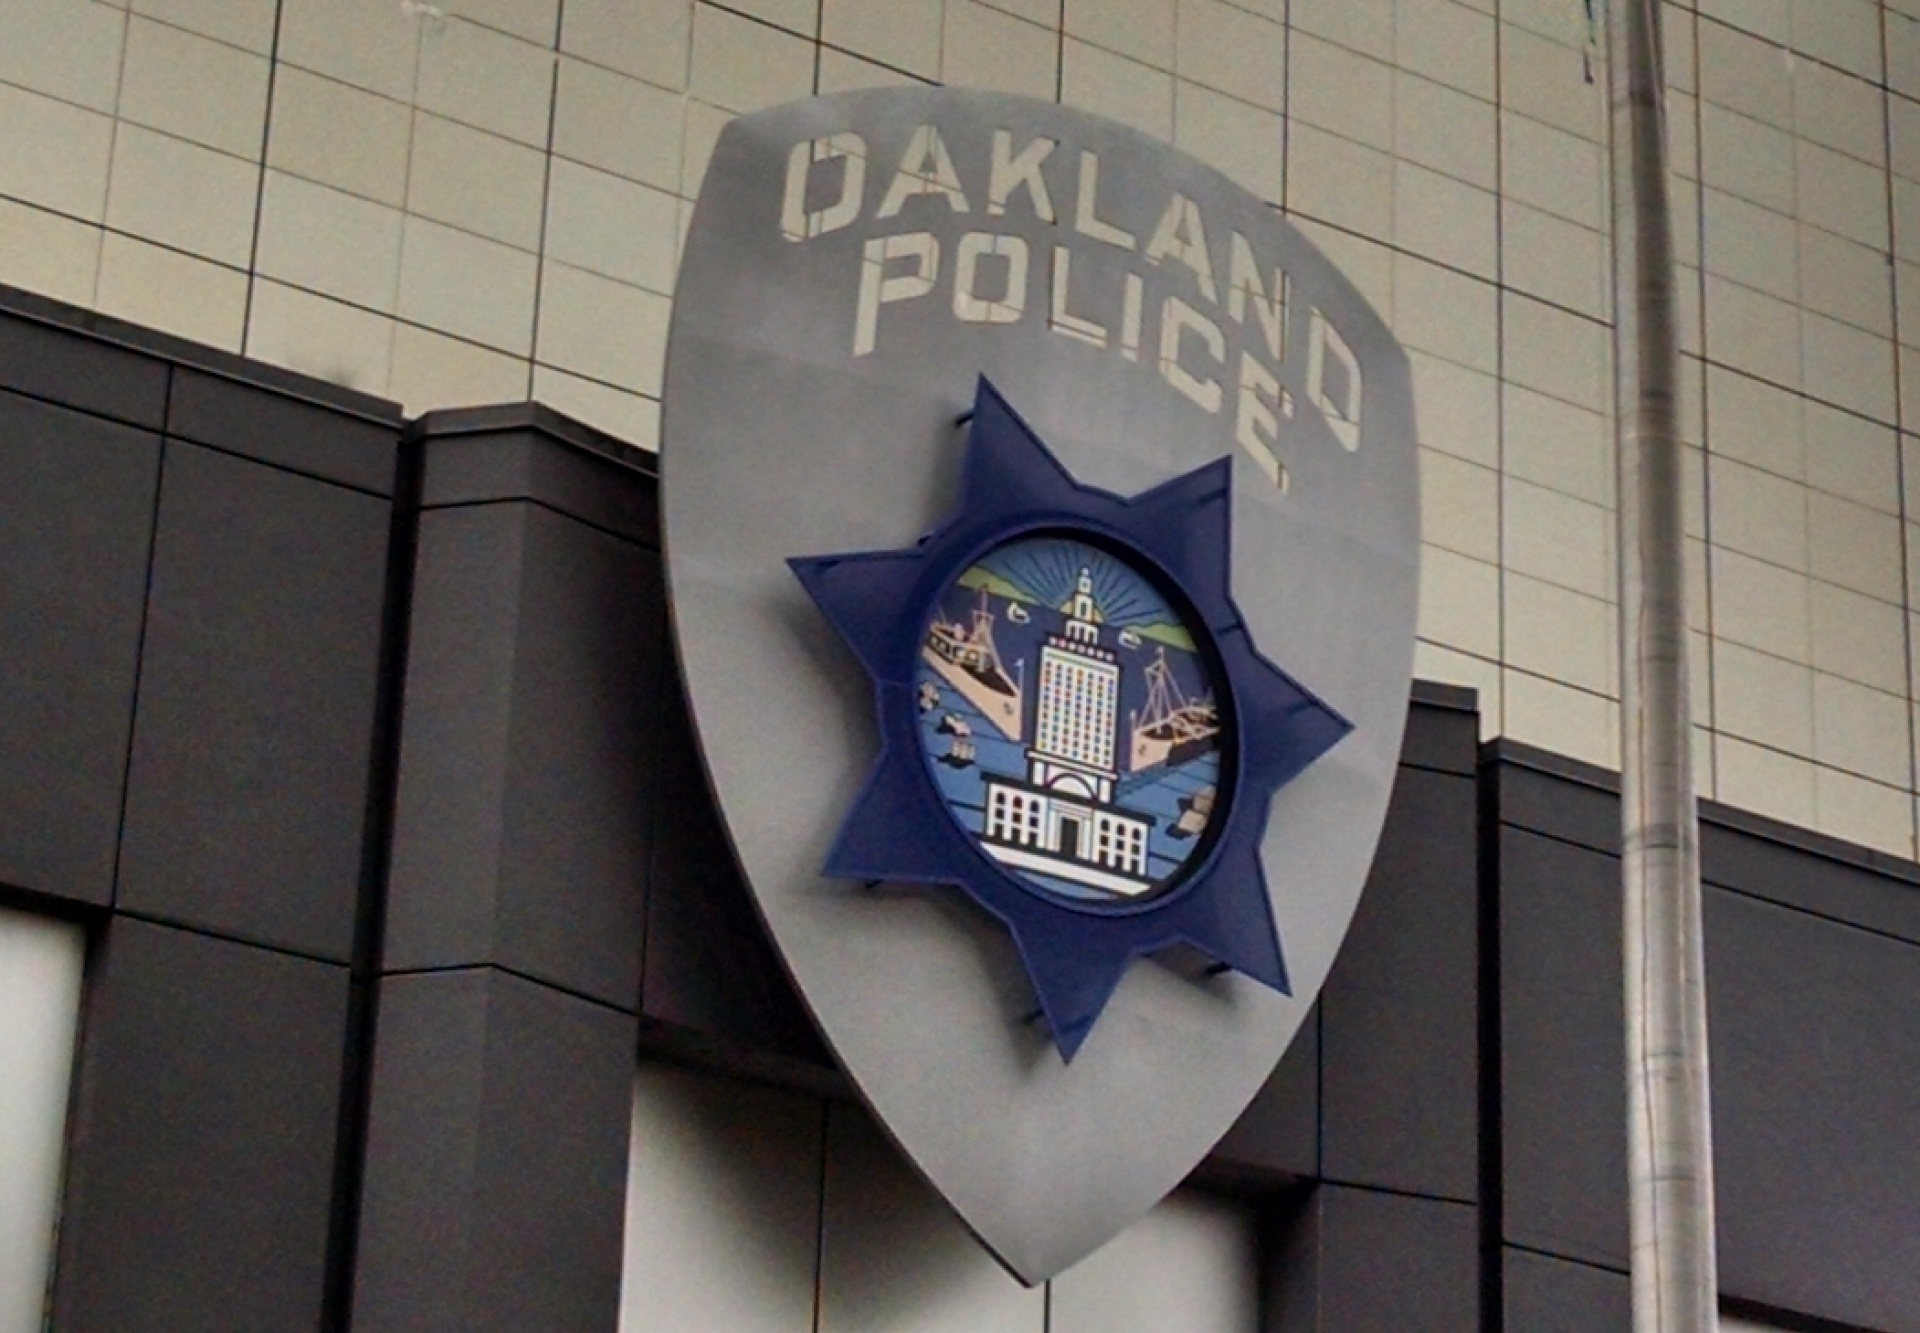 Oakland Police Officer Brian Bunton pleaded not guilty Friday to felony conspiracy to obstruct justice for allegedly alerting a young woman working in the sex trade to an undercover prostitution sting. He allegedly received sex in exchange, and also pleaded not guilty to engaging in prostitution.